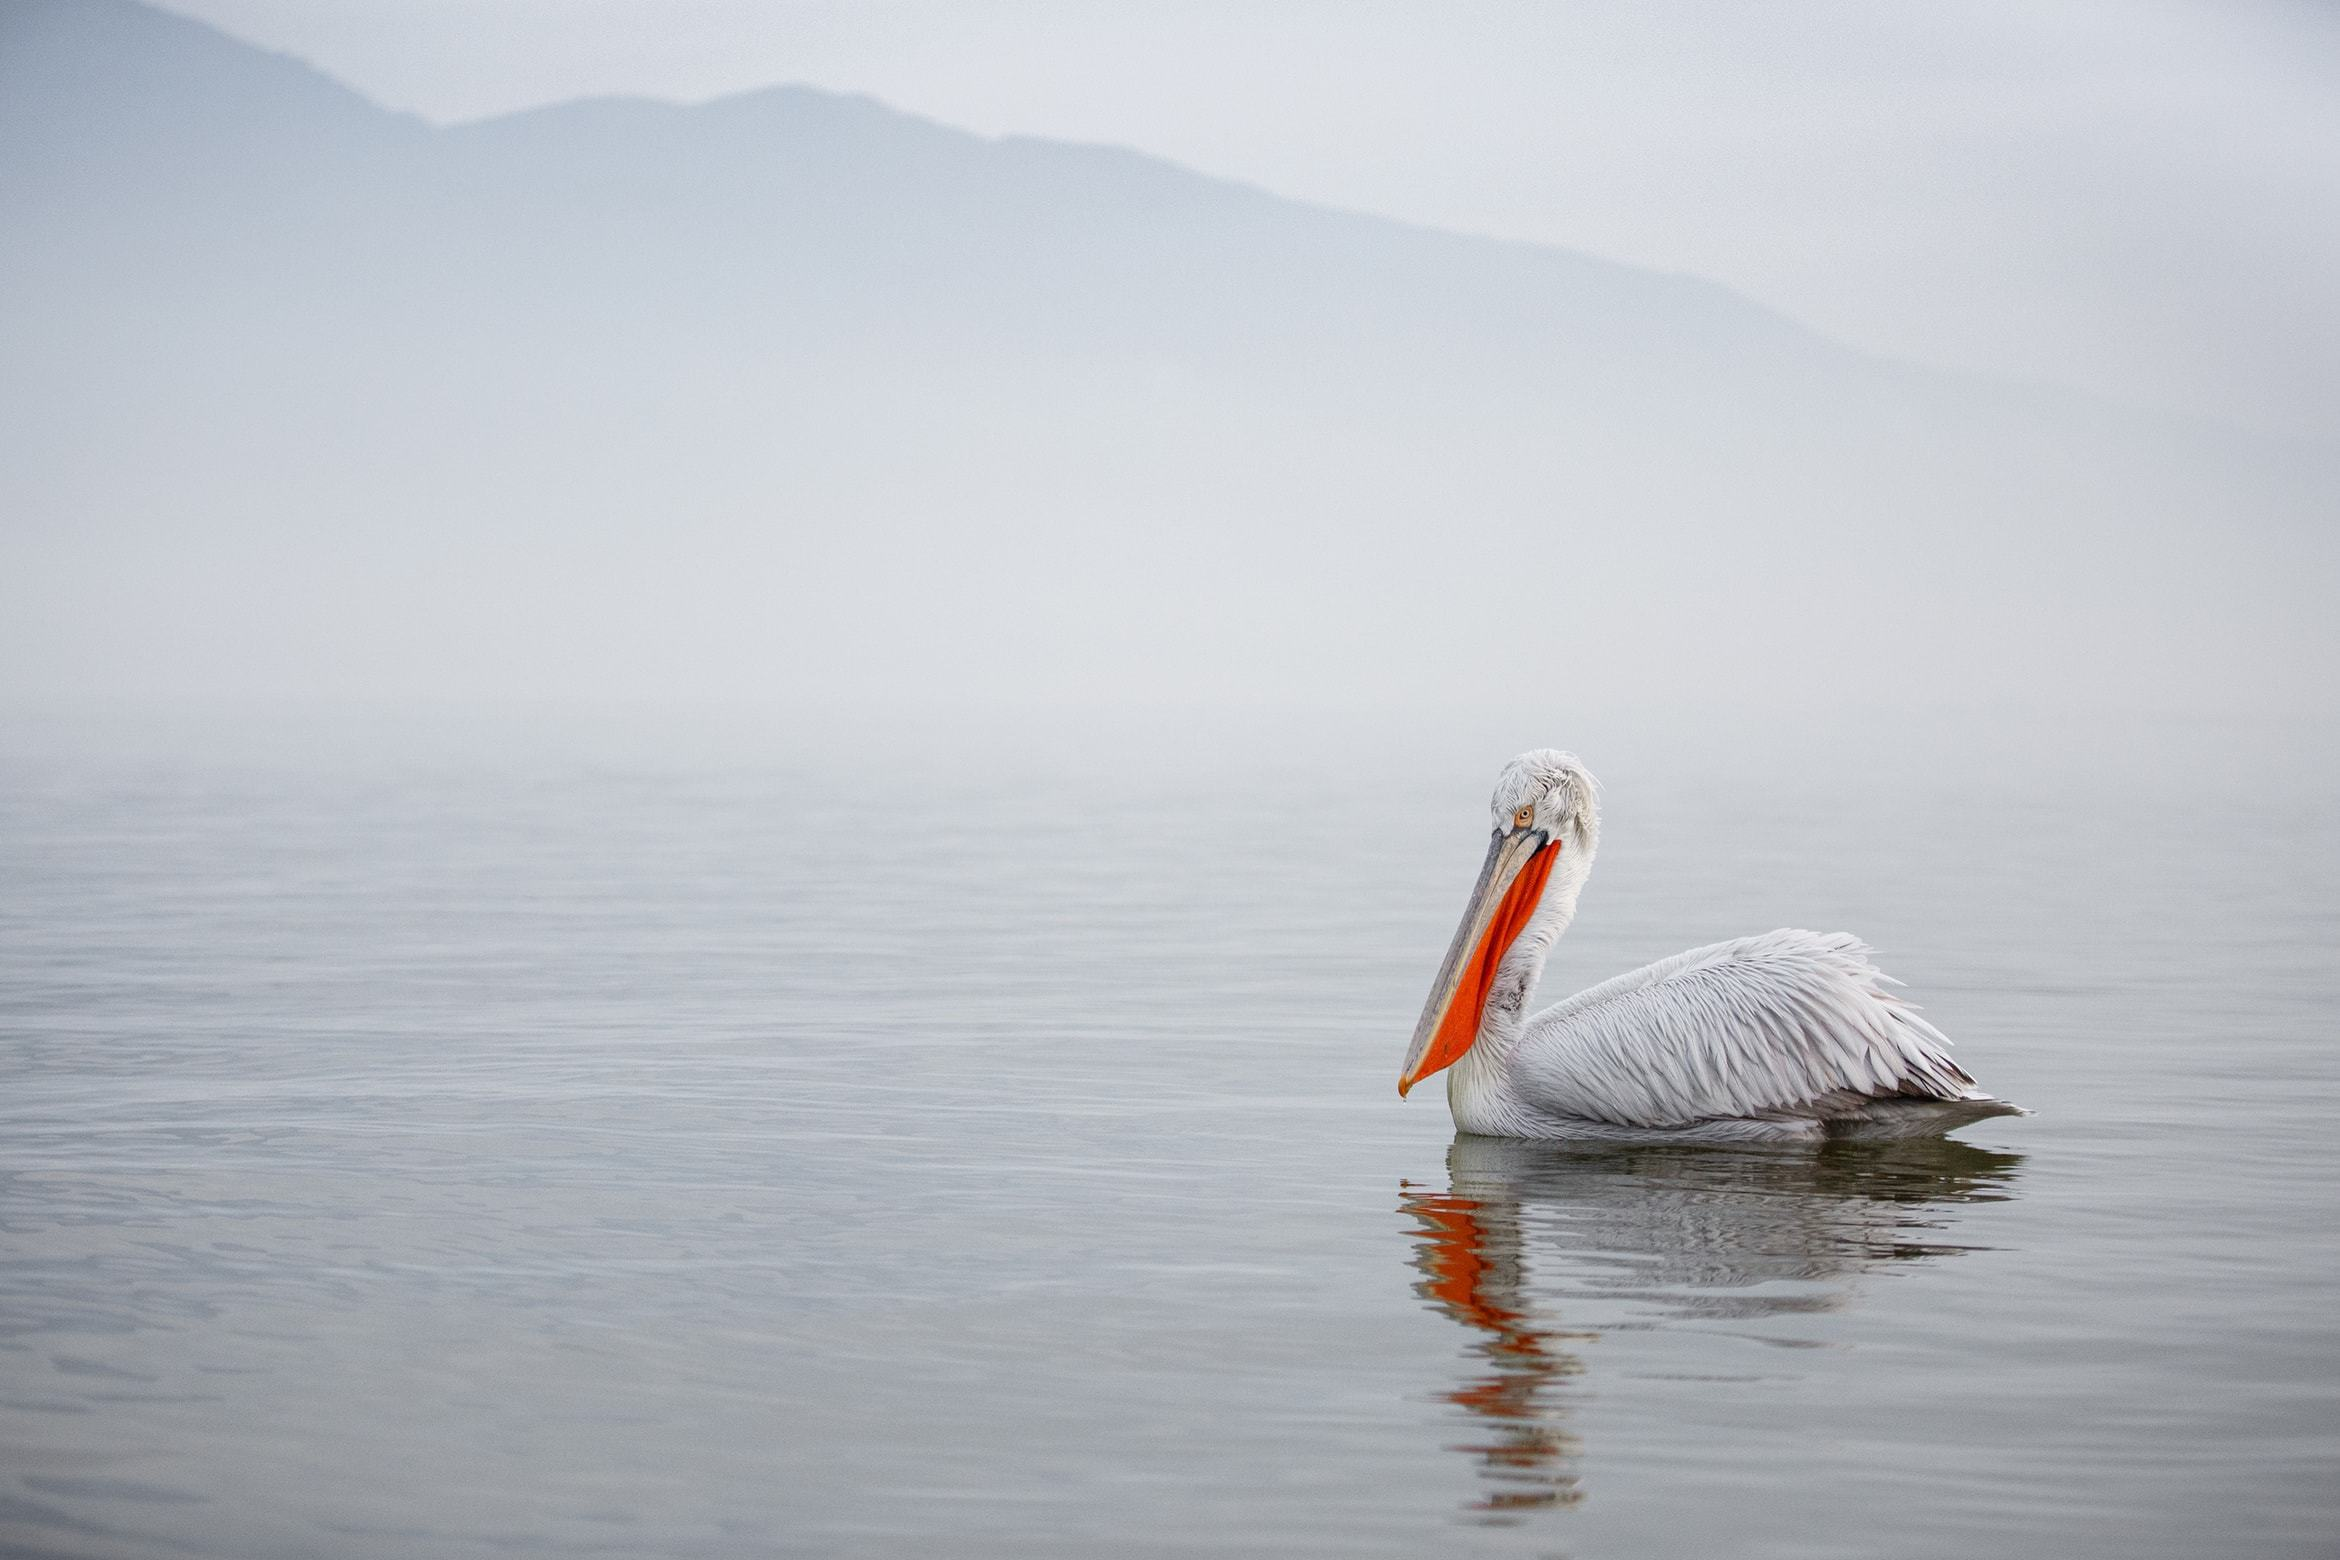 A Dalmatian Pelican Drifts Serenely Across The Waters Of Lake Kerkini   Photographed During The NaturesLens Dalmatian Pelicans Of Greece WIldlife Photograhpy Holiday